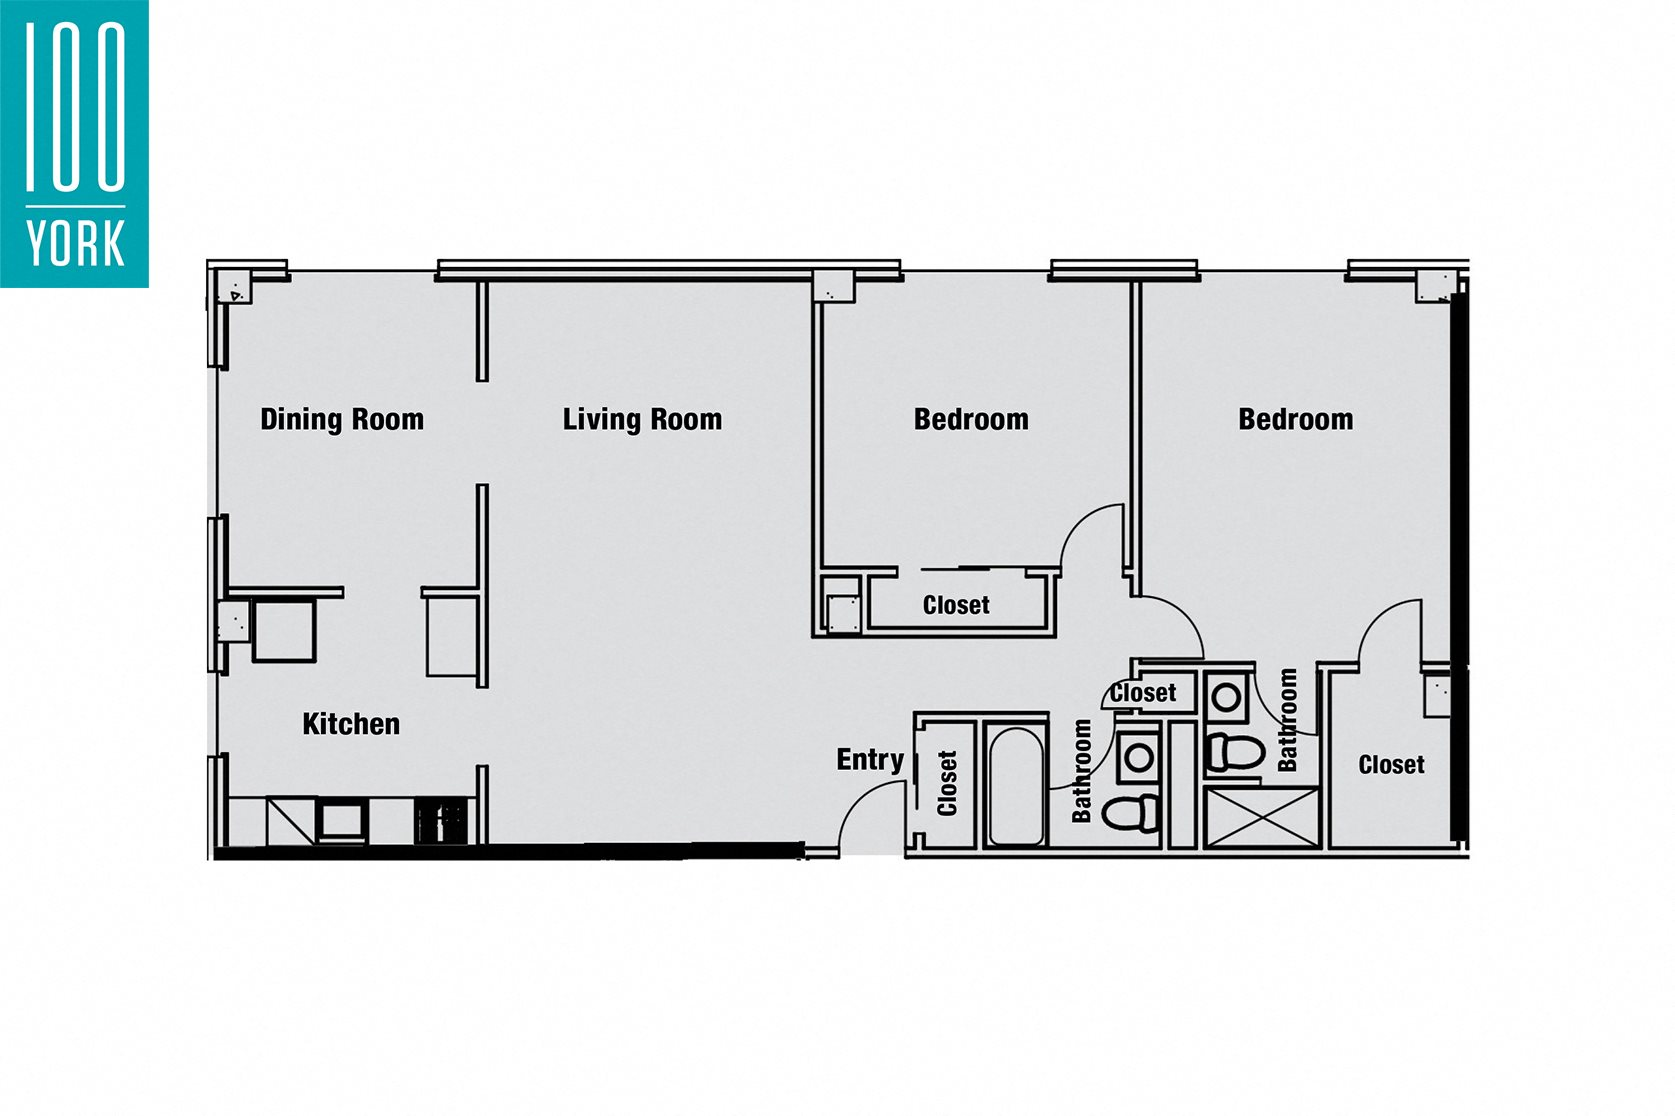 2 Bedroom + 2 Bath Floor Plan